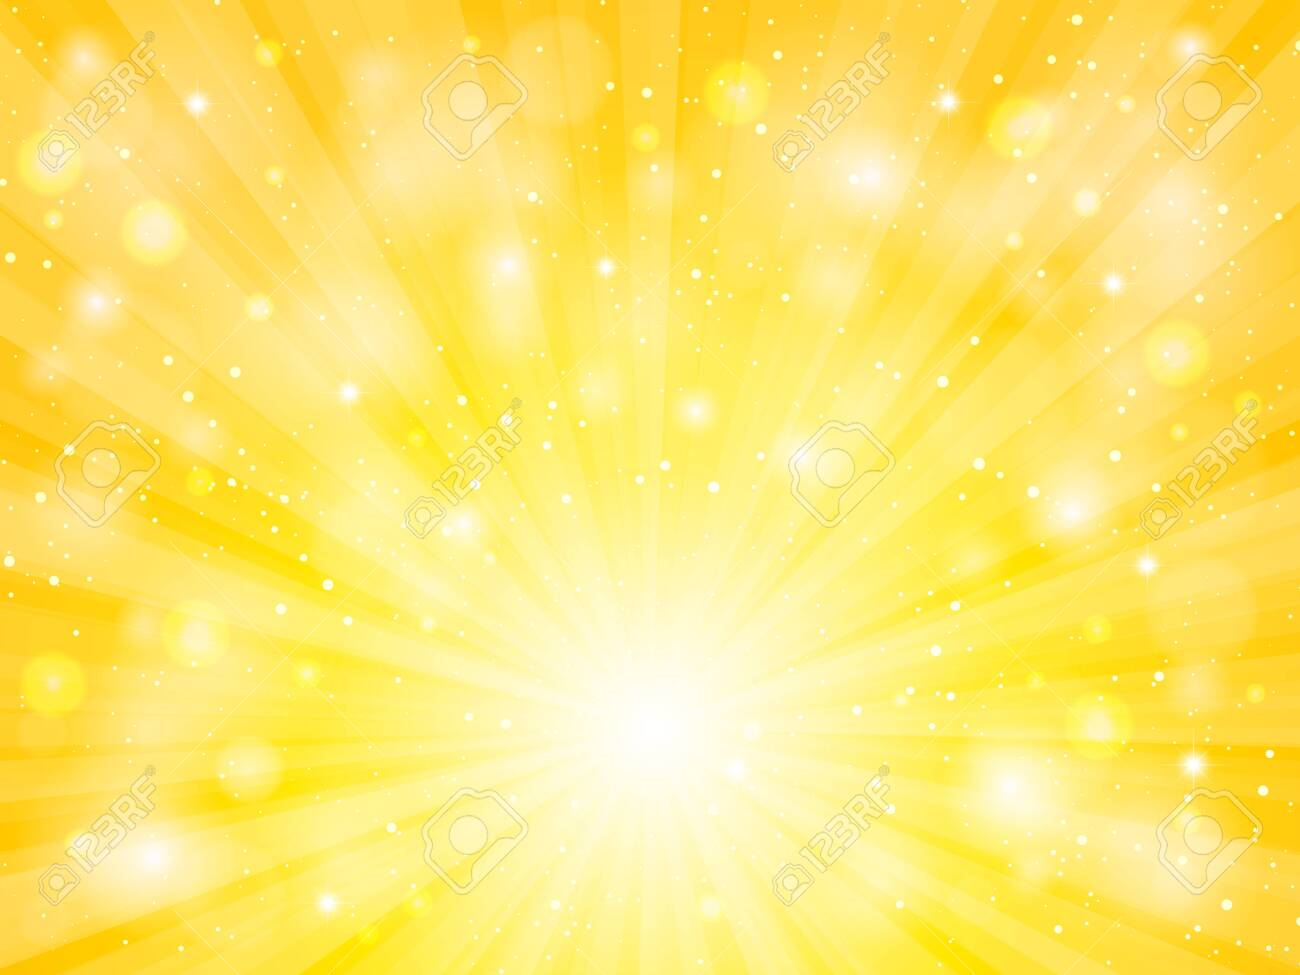 sun vector with lens flare yellow abstract background - 124227218